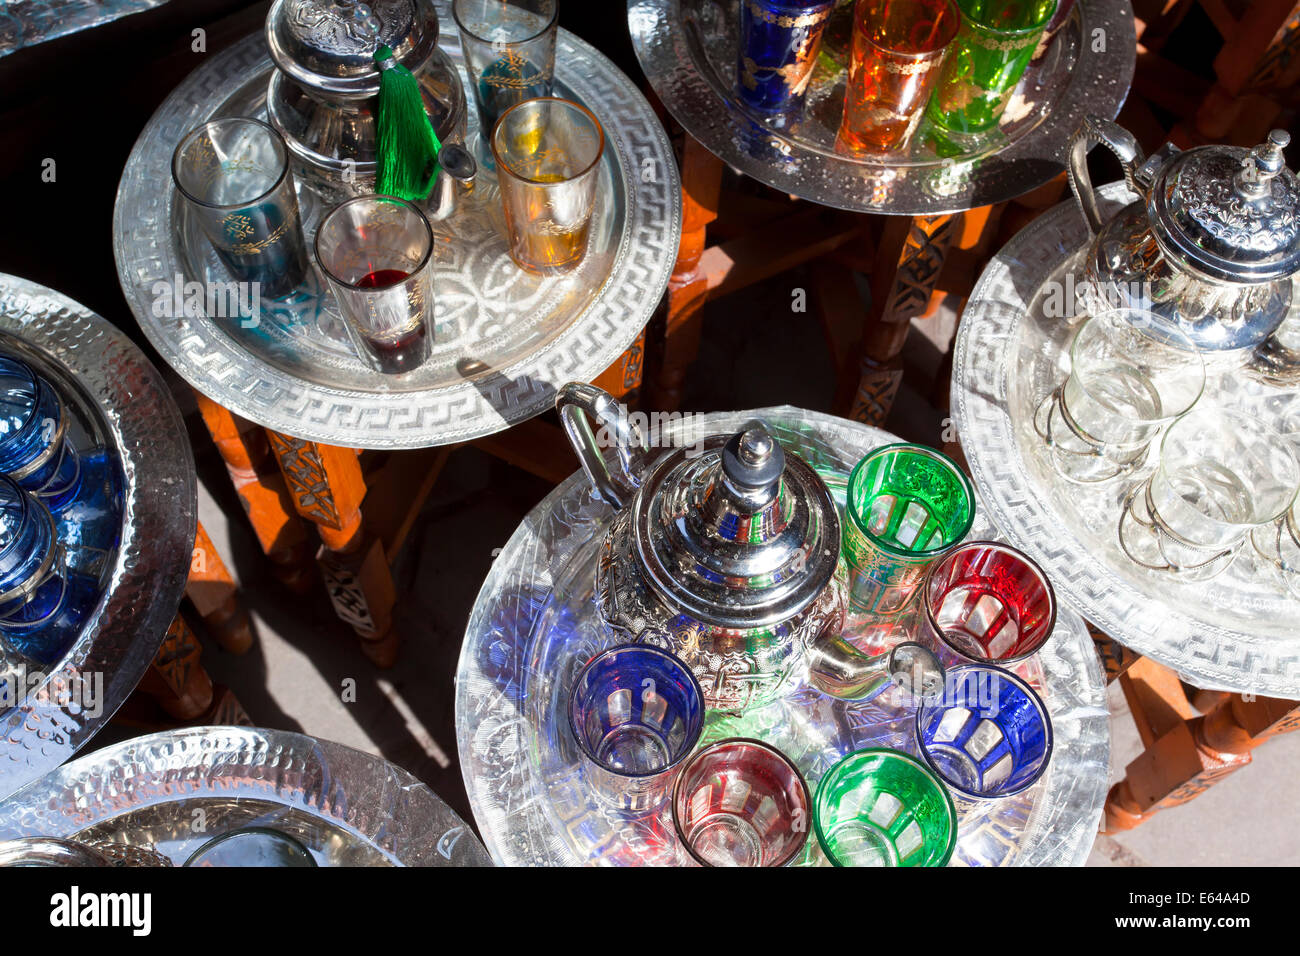 Pots of mint tea & glasses, The Souk, Marrakech, Morocco - Stock Image